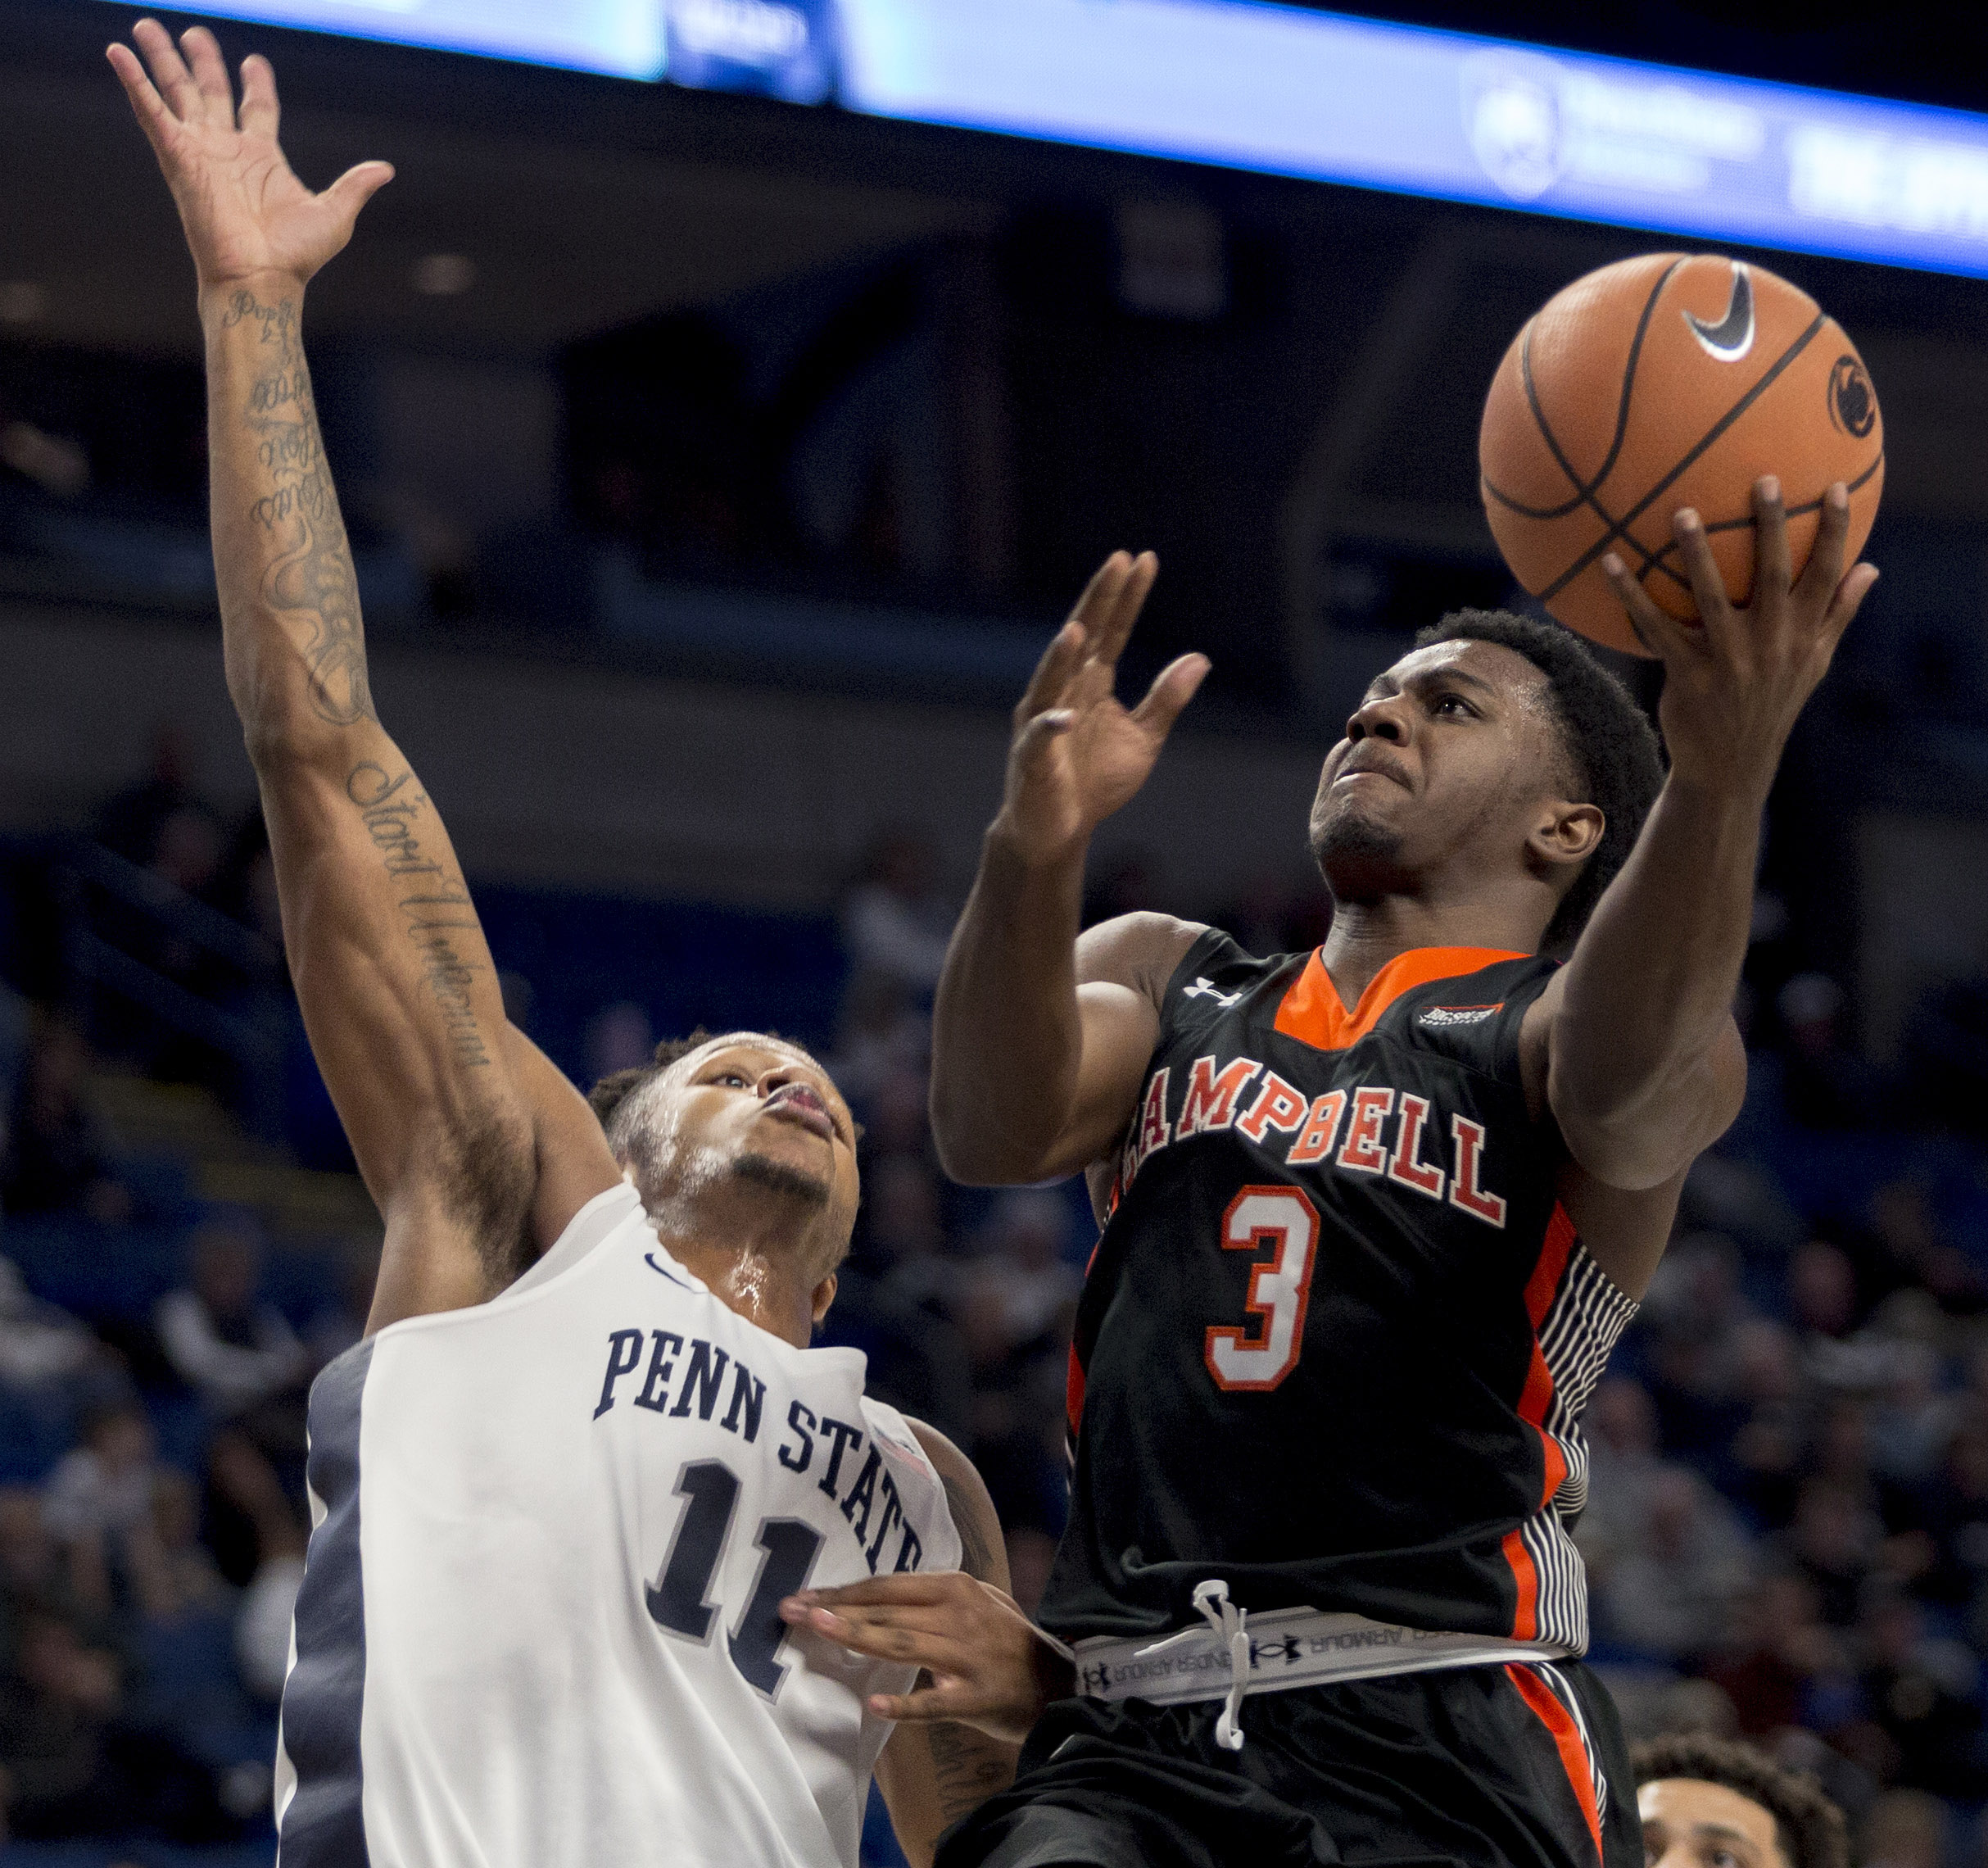 Campbell star Chris Clemons joins college basketball's elite 3,000-point club